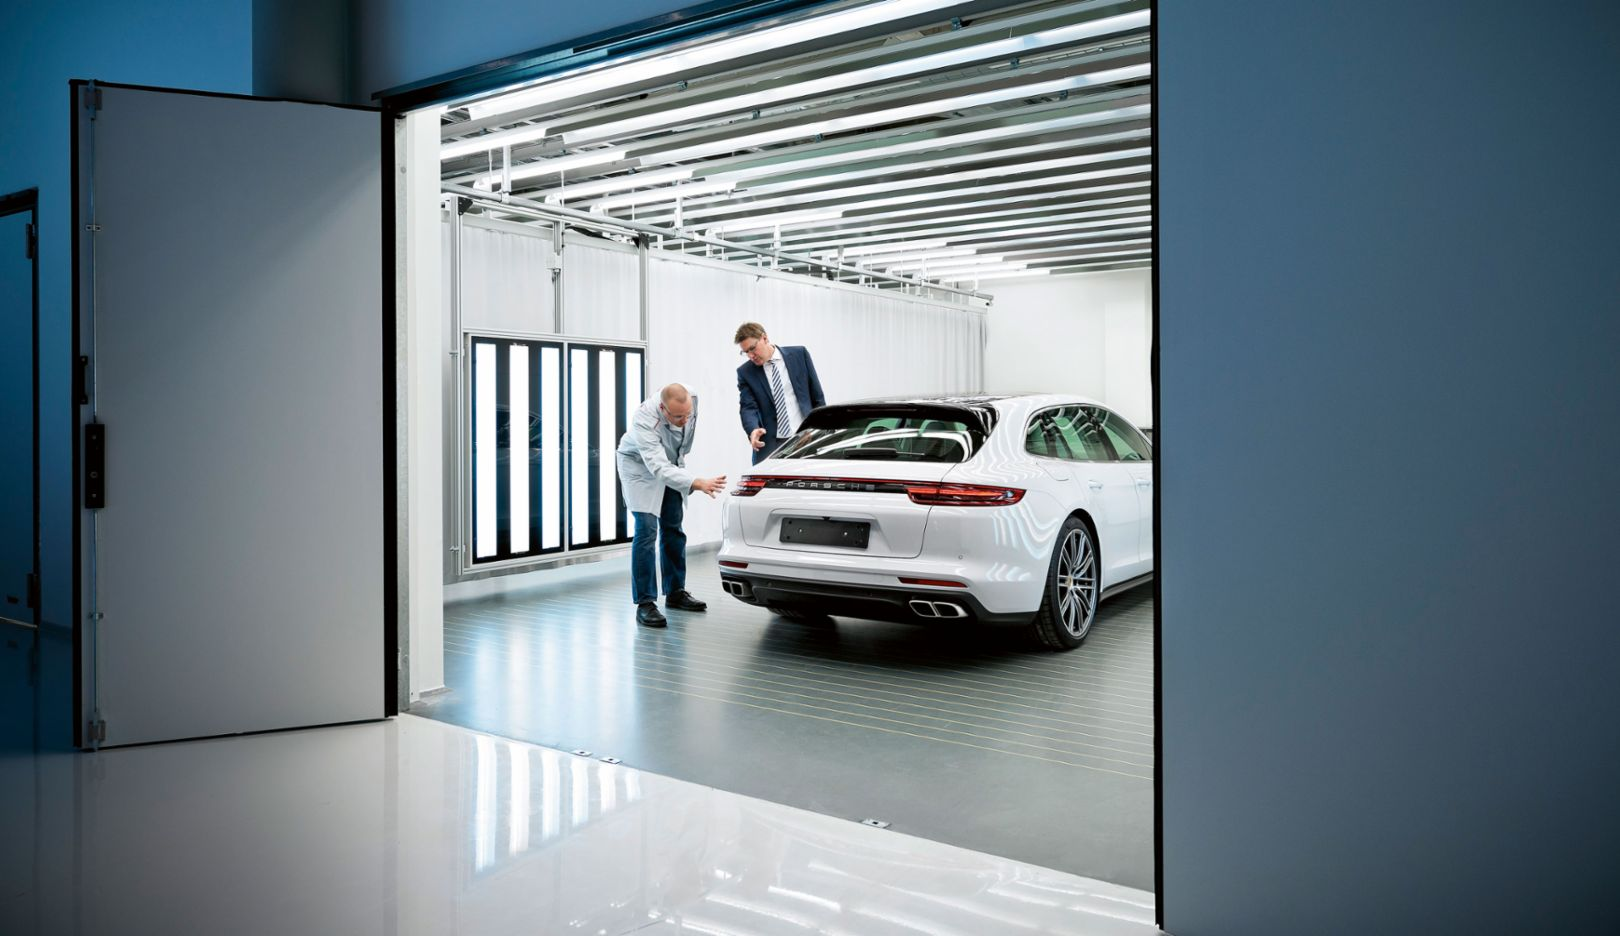 Alexander Fijak, Andreas Schmidt, director of quality at the Leipzig site, l-r, Pilot Hall, Porsche plant, Leipzig, 2017, Porsche AG